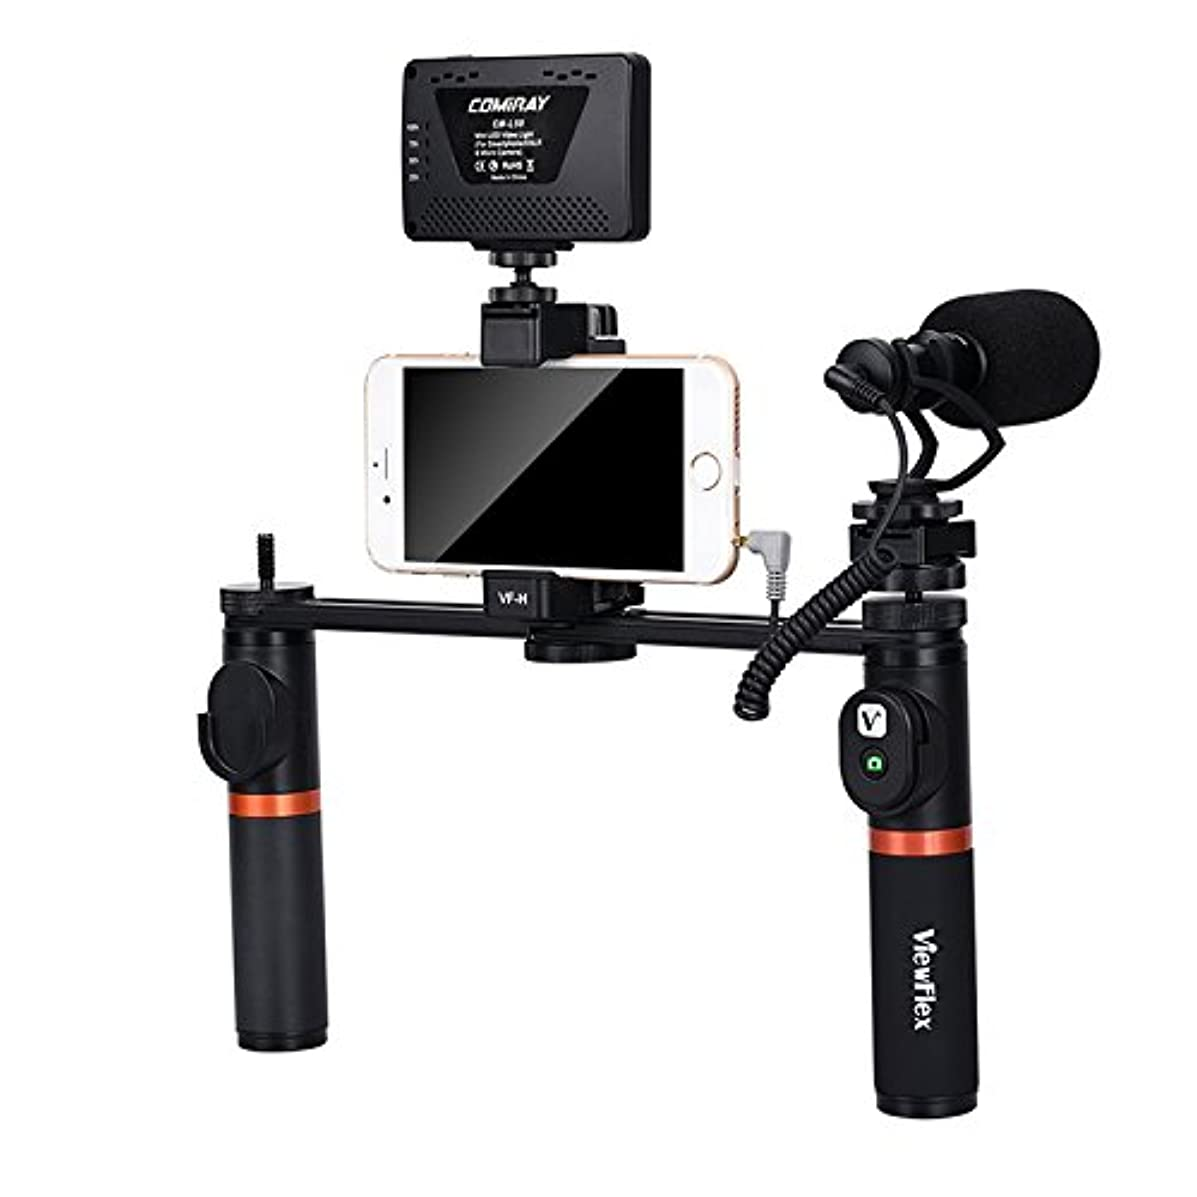 RISHIL WORLD VF-H7 Bluetooth Electronic Video Grip Stabilizer with LED Light Microphone Remote Control